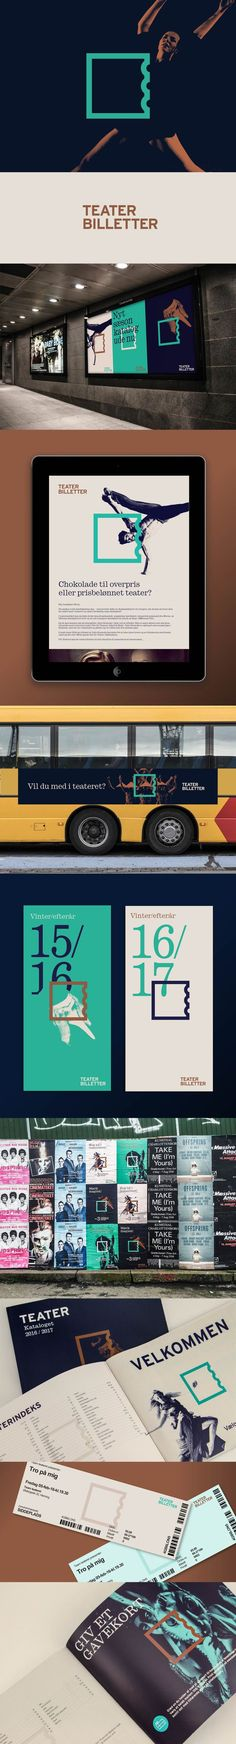 Visual identity for Teaterbilletter by IDna Group.